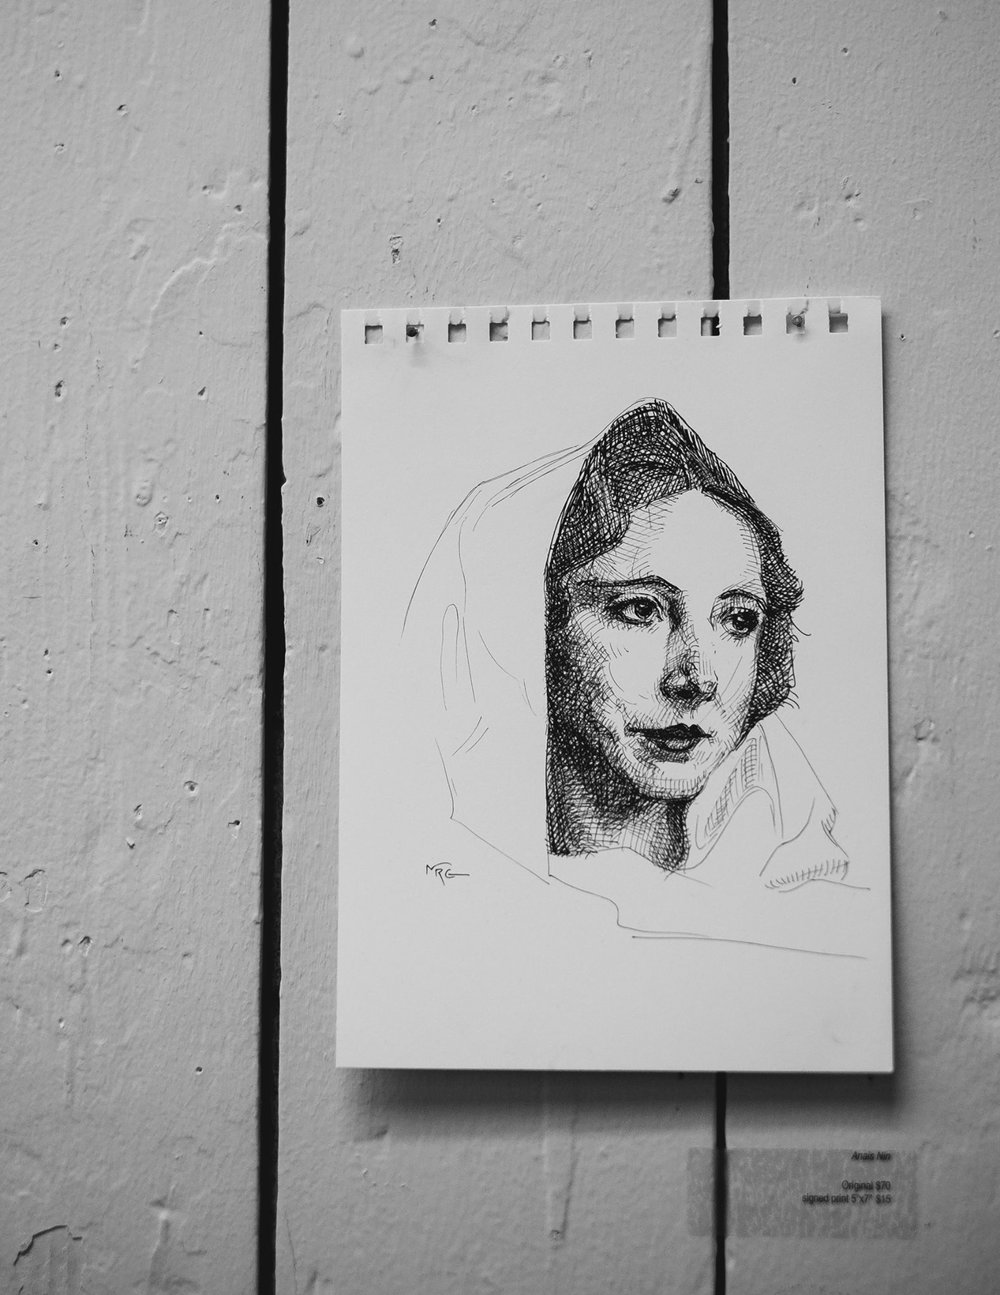 Image of Anais Nin a French Cuban poet, taken at Stumptown Roaster in Portland Oregon,  December 2014